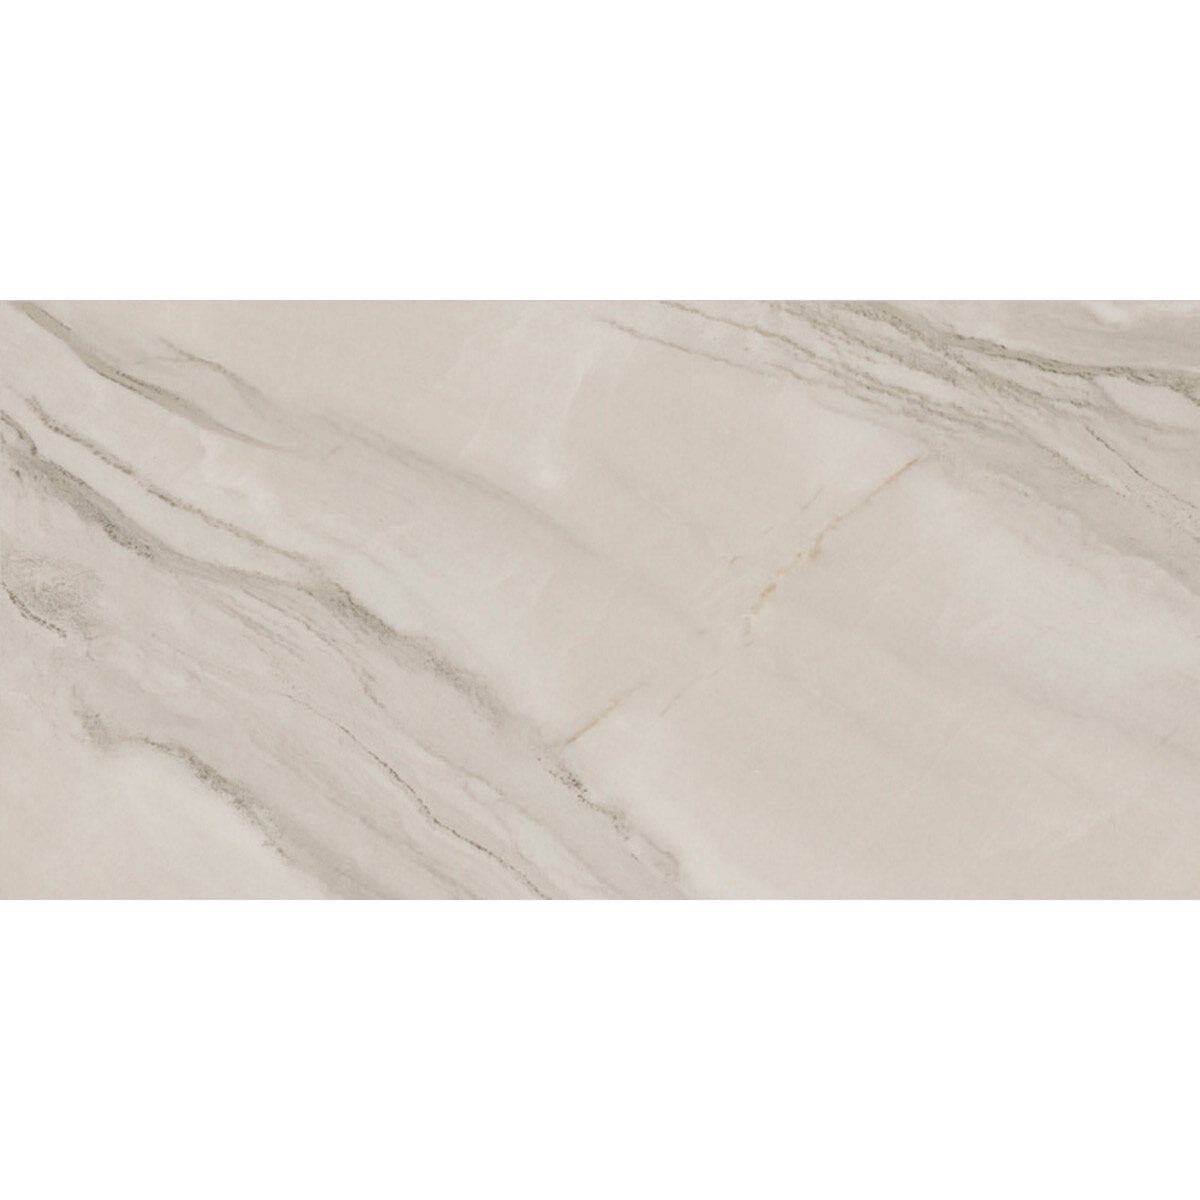 T10094 FES 3027 20X40 FLOOR TILE MATT P1